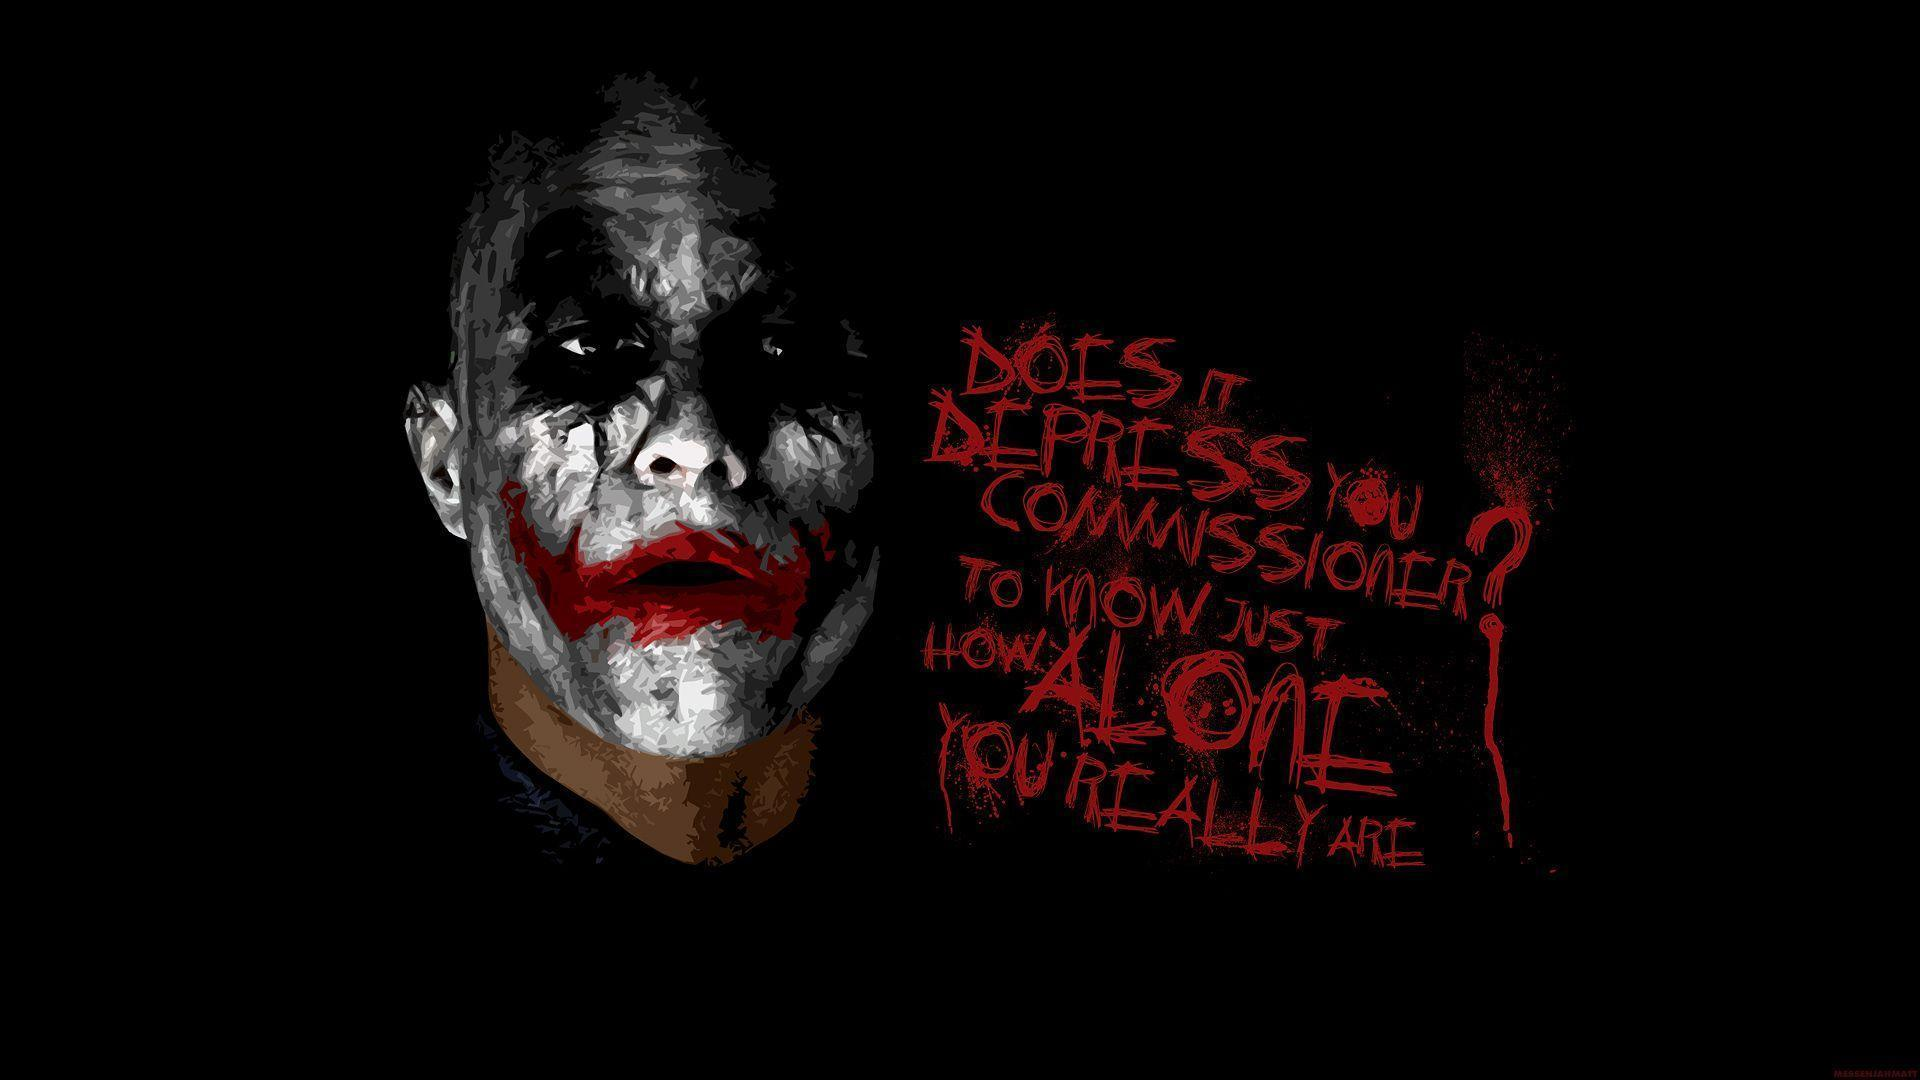 The Joker HD Wallpaper - WallpaperSafari